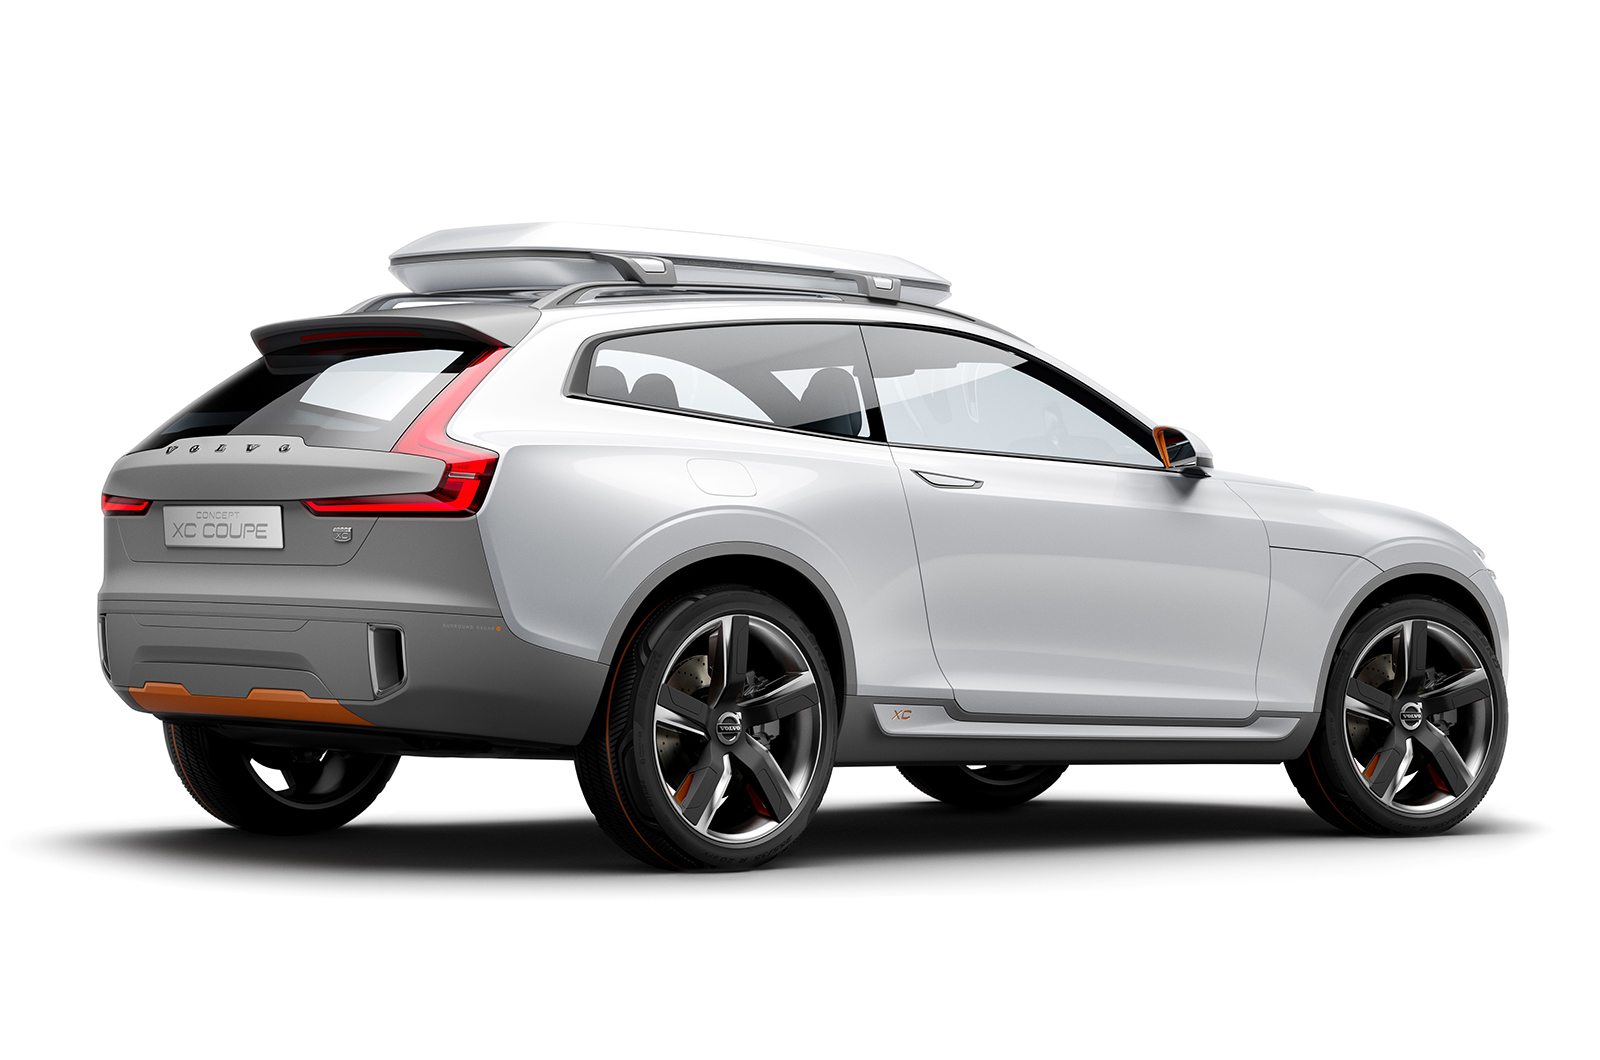 volvo concept xc suv photo gallery car gallery suv crossovers autocar india. Black Bedroom Furniture Sets. Home Design Ideas